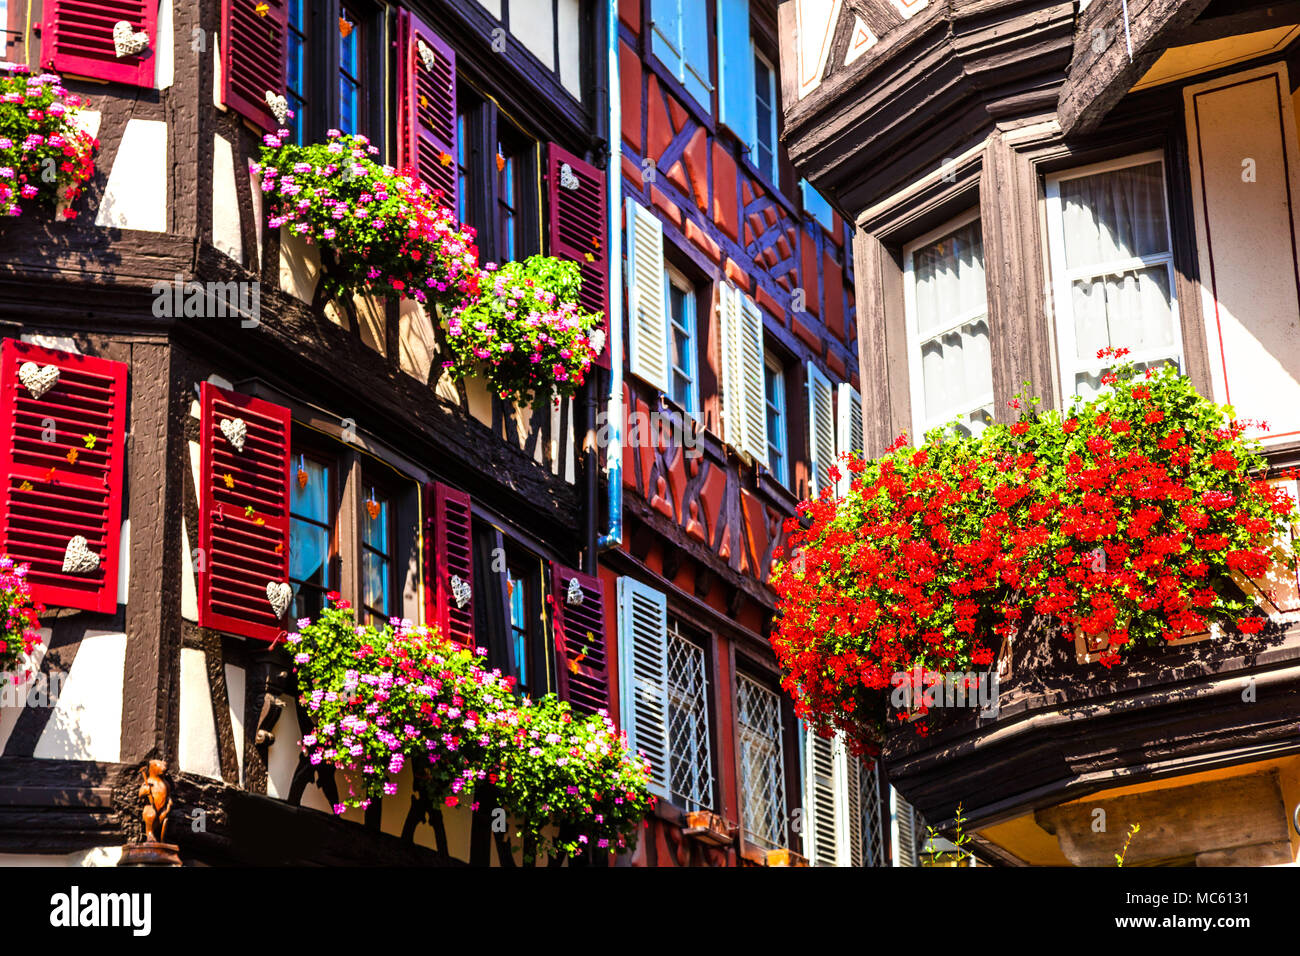 Traditional half timber in Colmar town,Alsace,France. - Stock Image